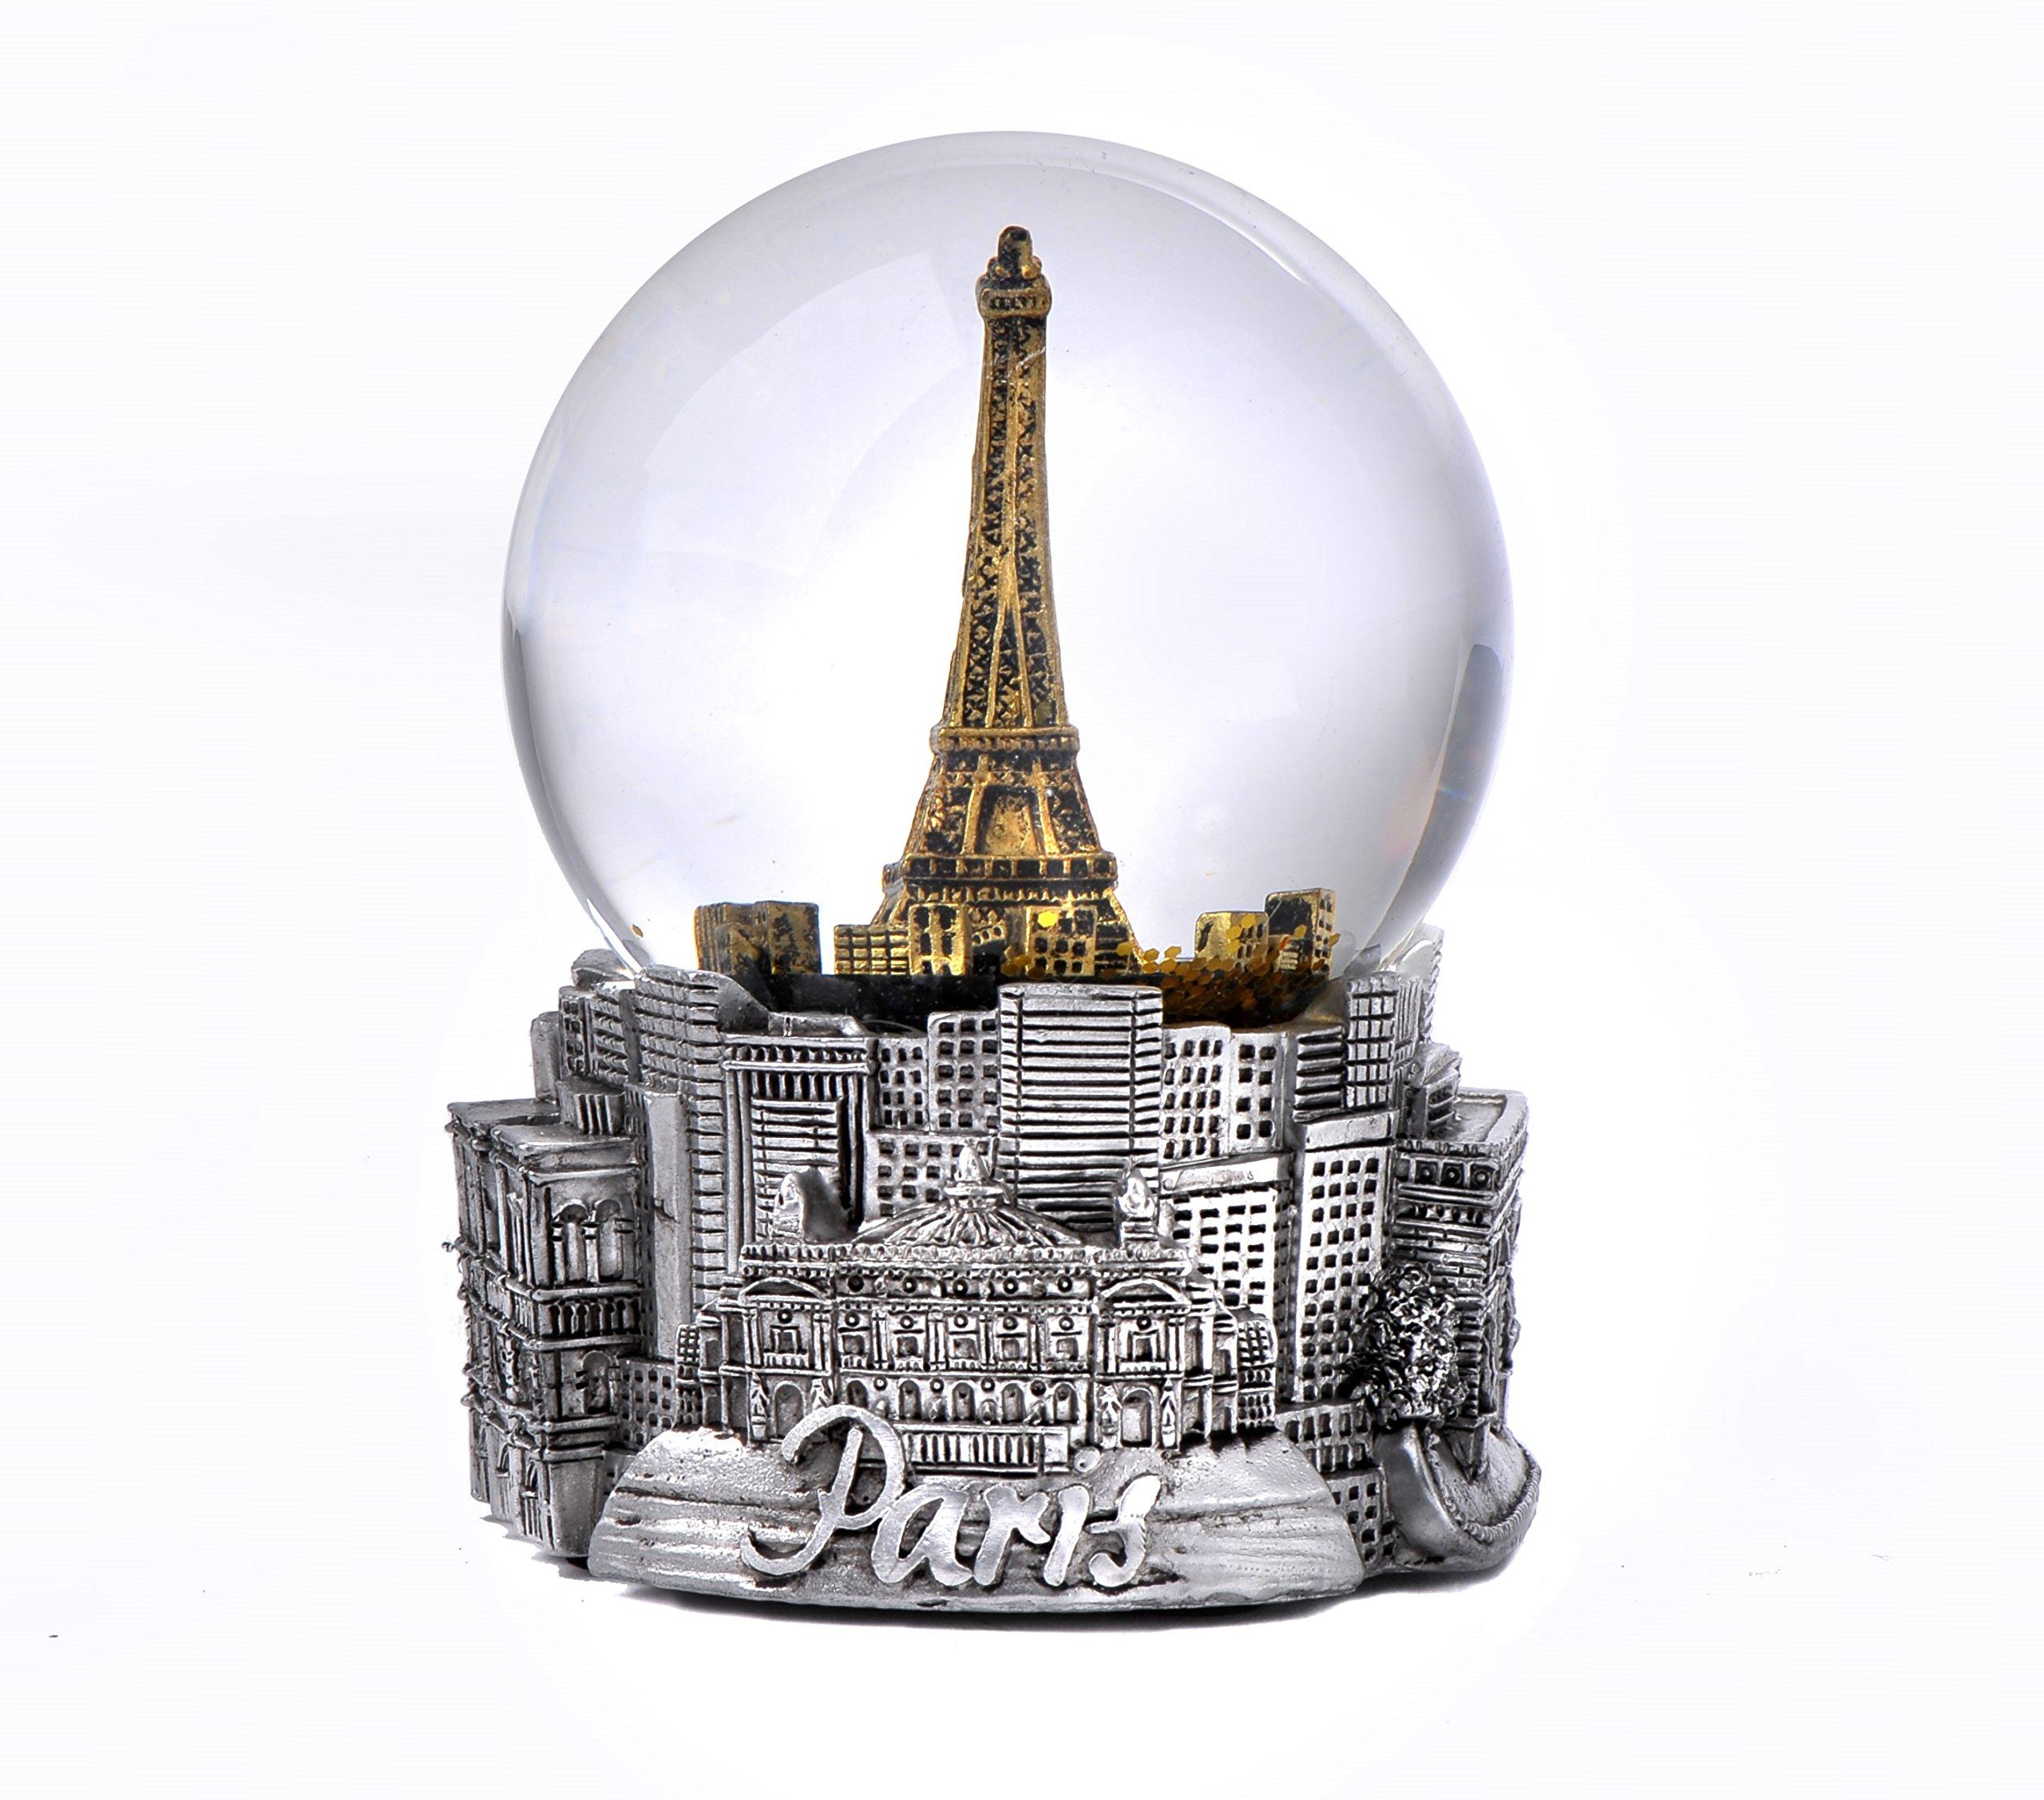 Paris France Eiffel Tower Snow Globe in Silver and Gold Exclusive 65mm